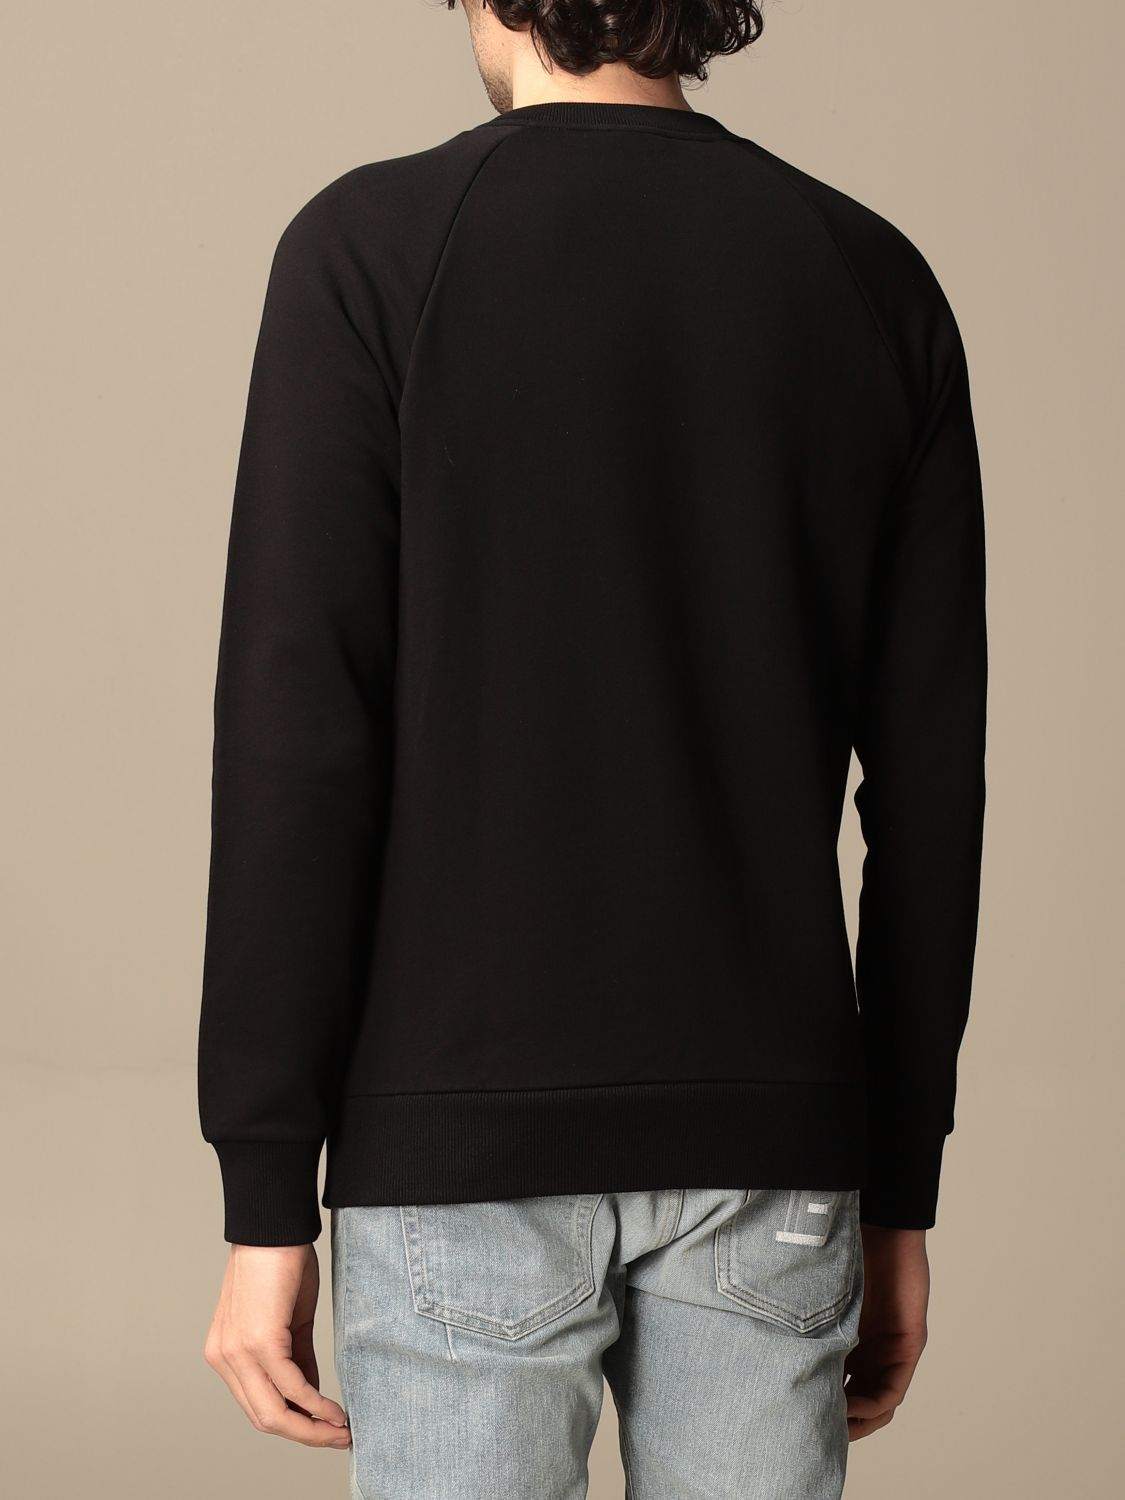 Sweatshirt Balmain: Balmain cotton sweatshirt with logo black 3